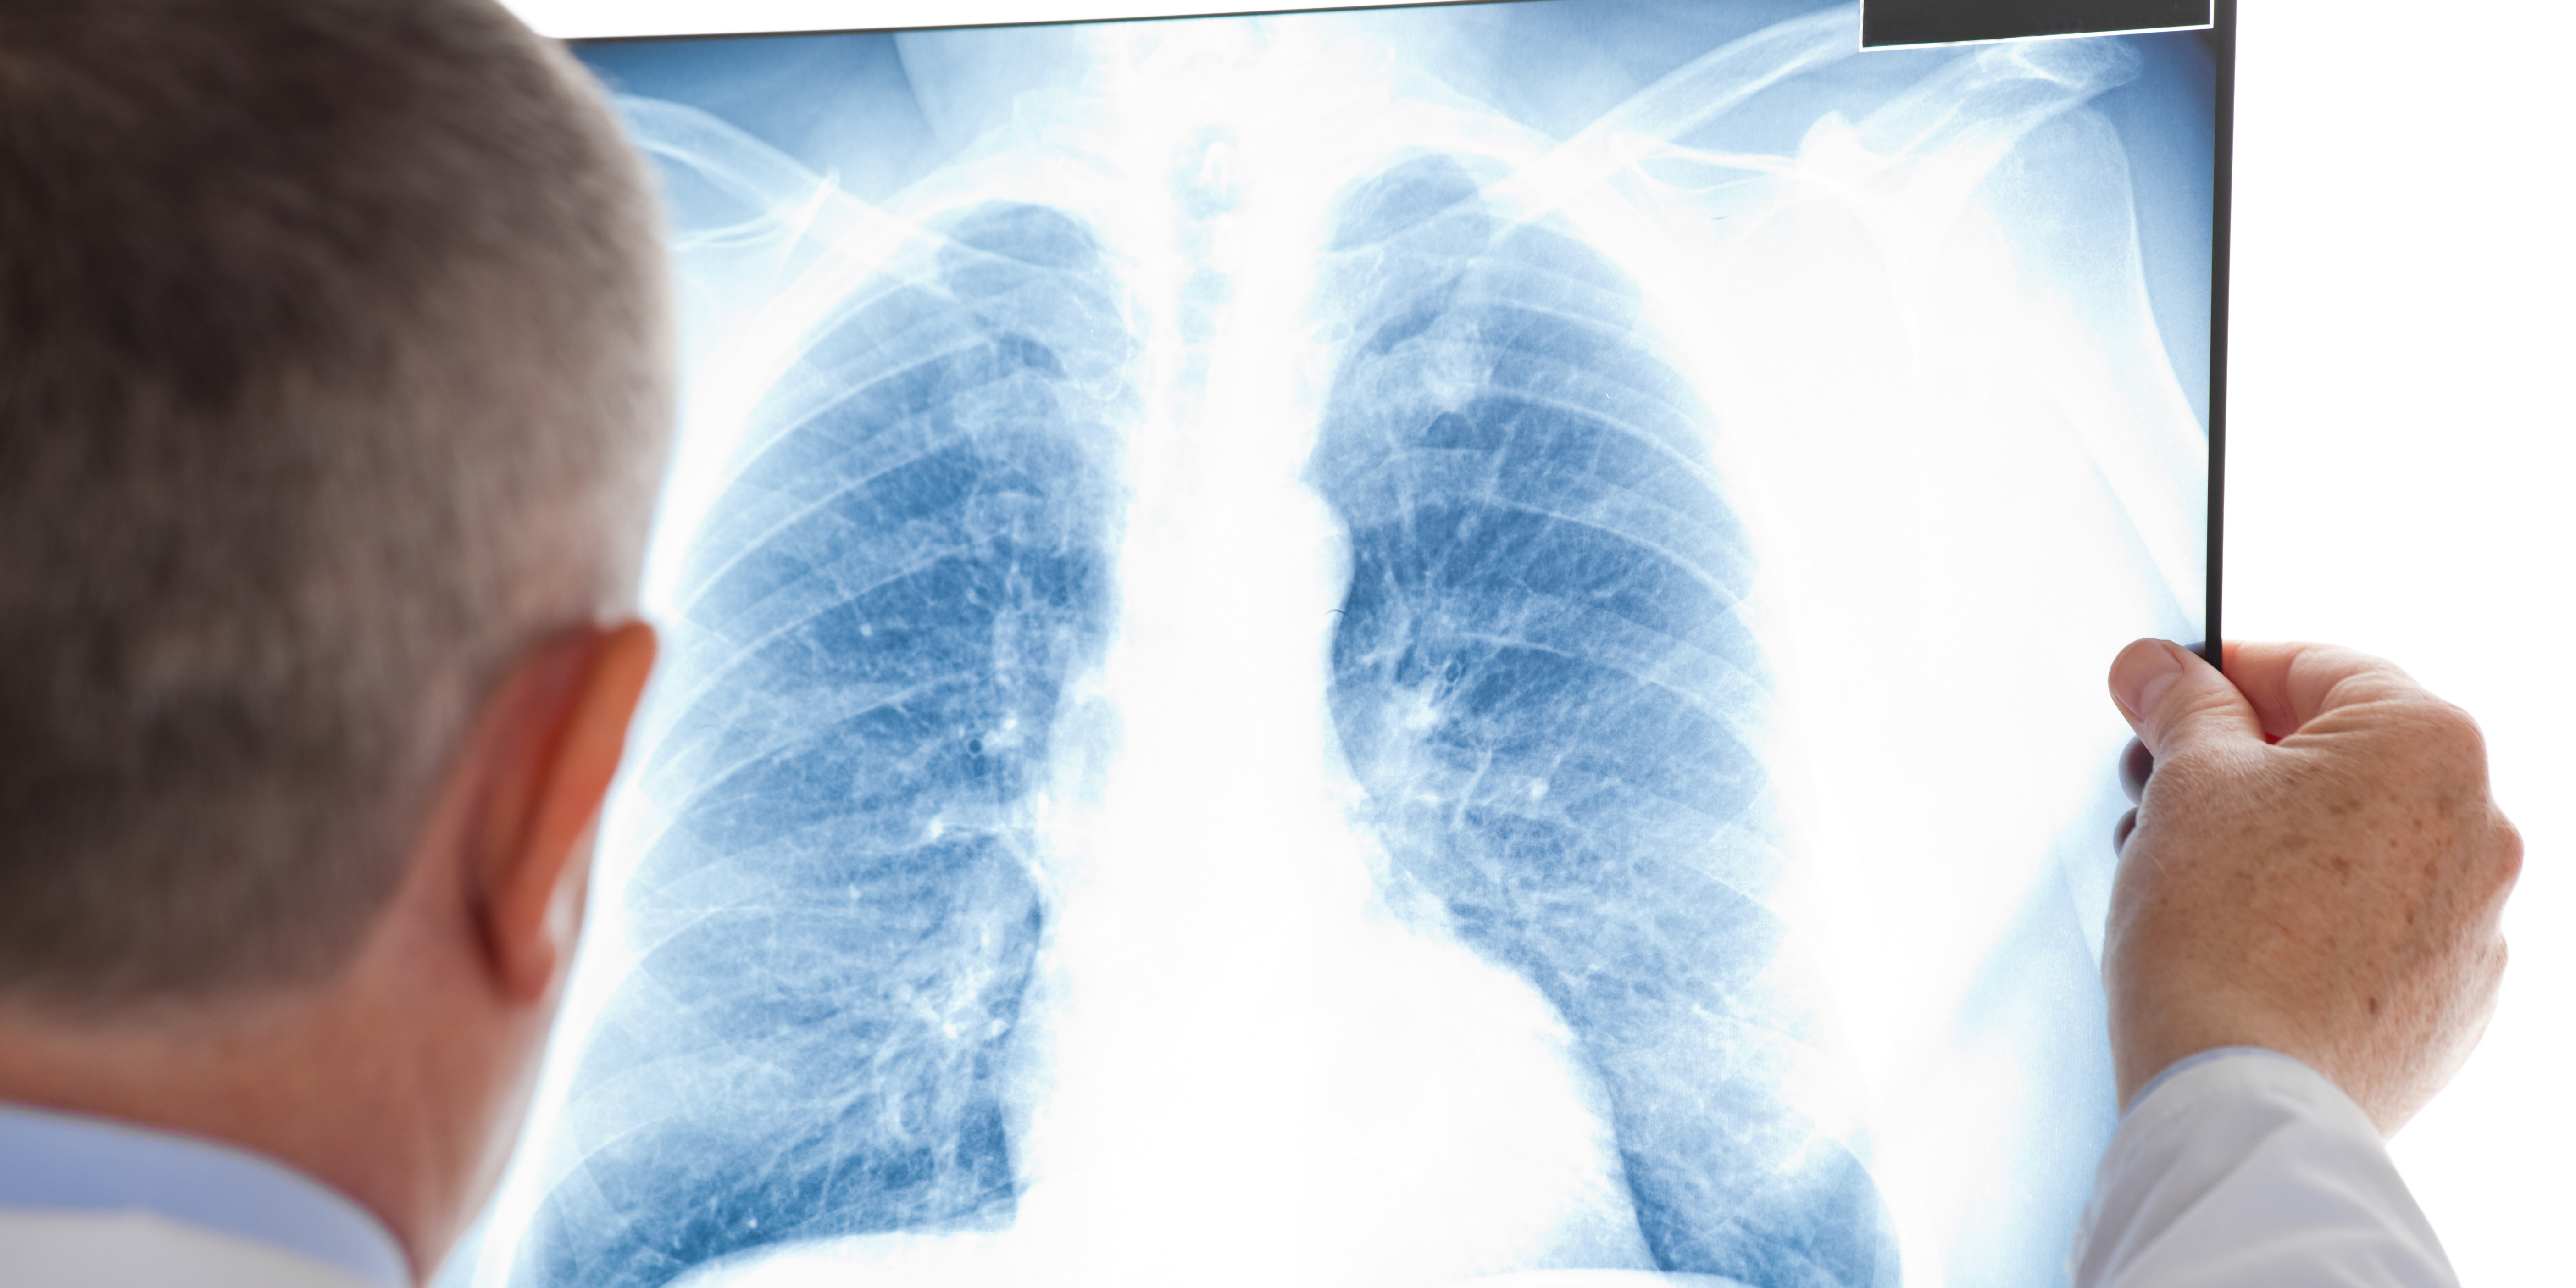 Lung Scan Cropped